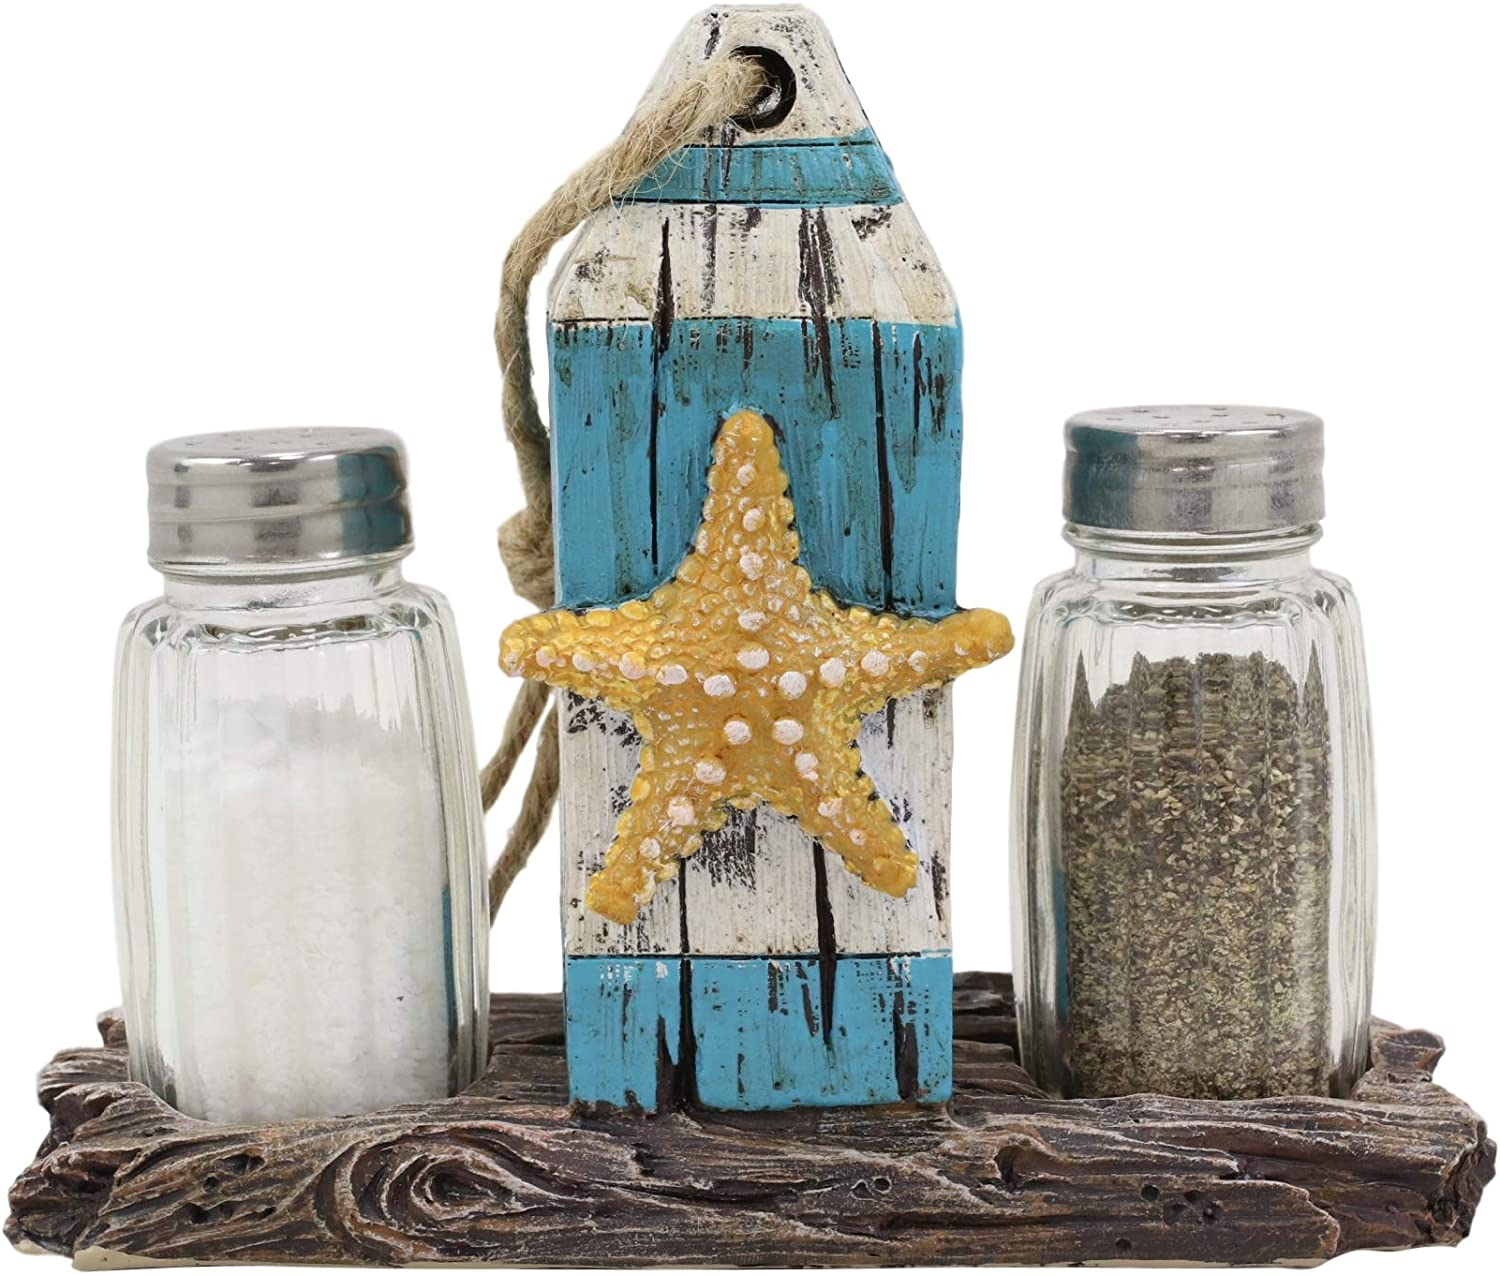 Ebros Gift Sea Star Shell Starfish On Blue Distressed Wood Getty Post Salt And Pepper Shakers Set Holder Statue 6.25